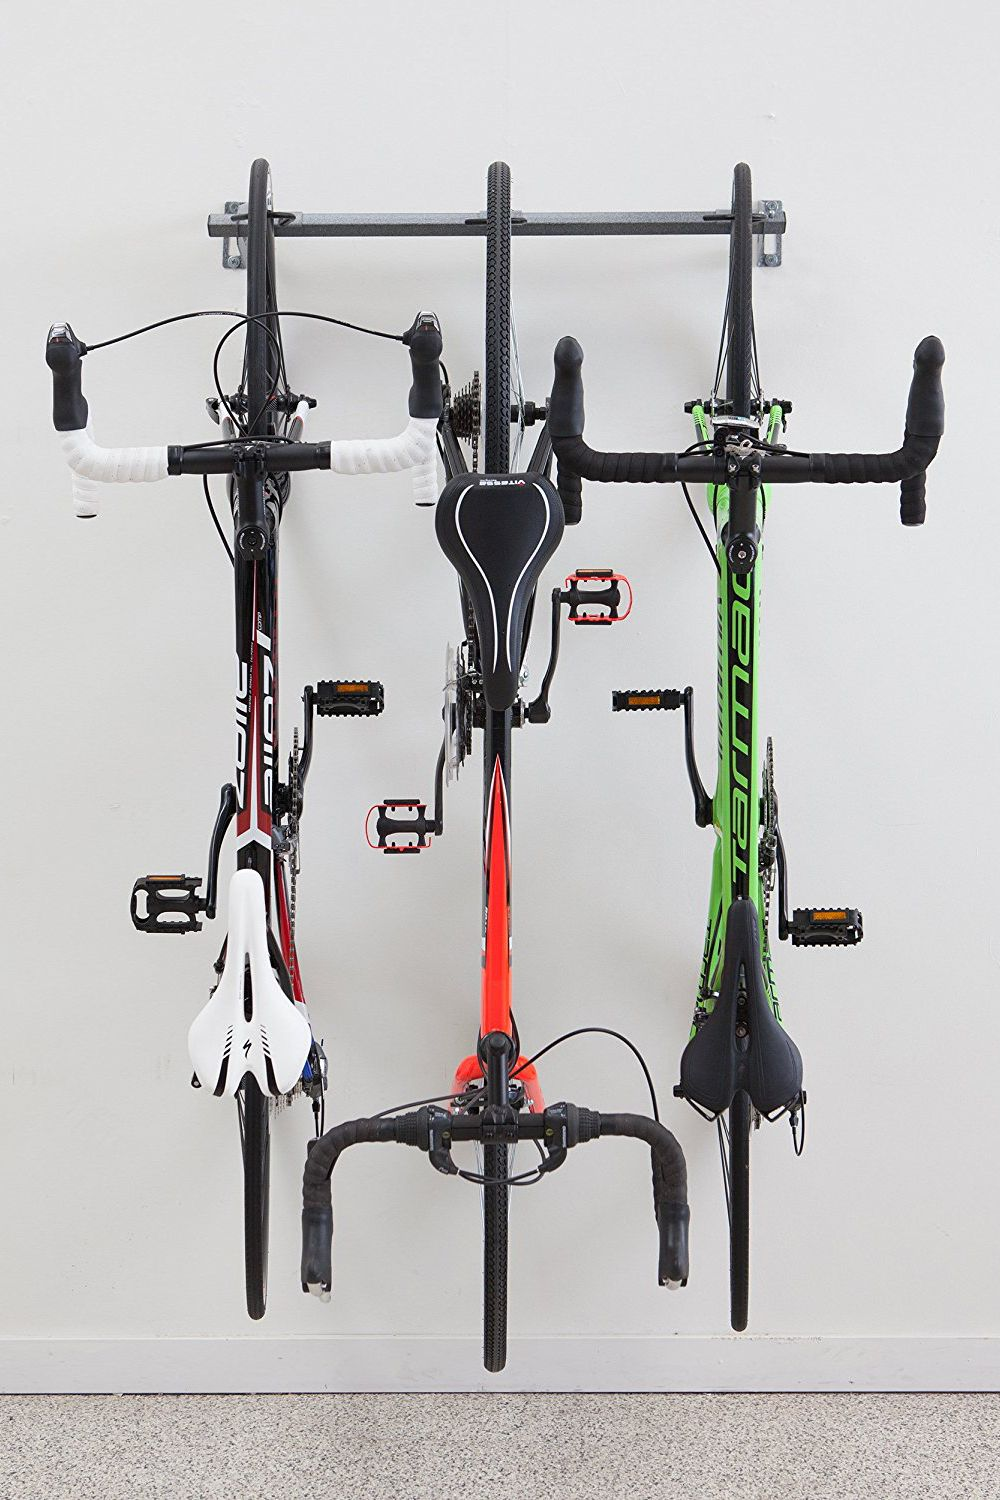 Tidy Garage Bike Rack Installation 10 Genius Garage Organization Ideas